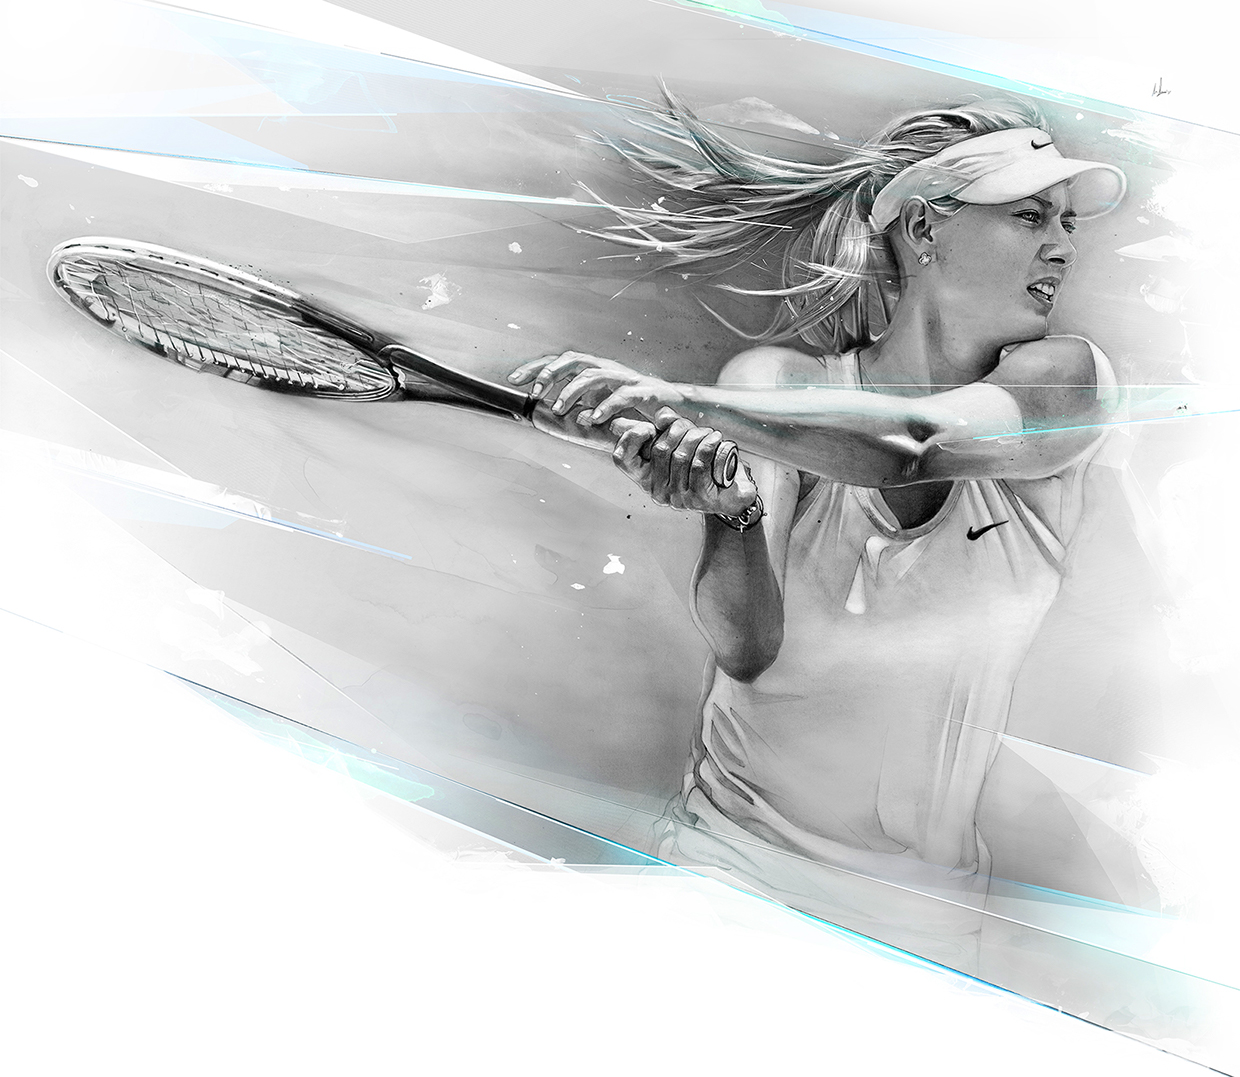 05-Maria-Sharapova-Alexis-Marcou-Traditional-and-Digital-Celebrity-Drawings-www-designstack-co